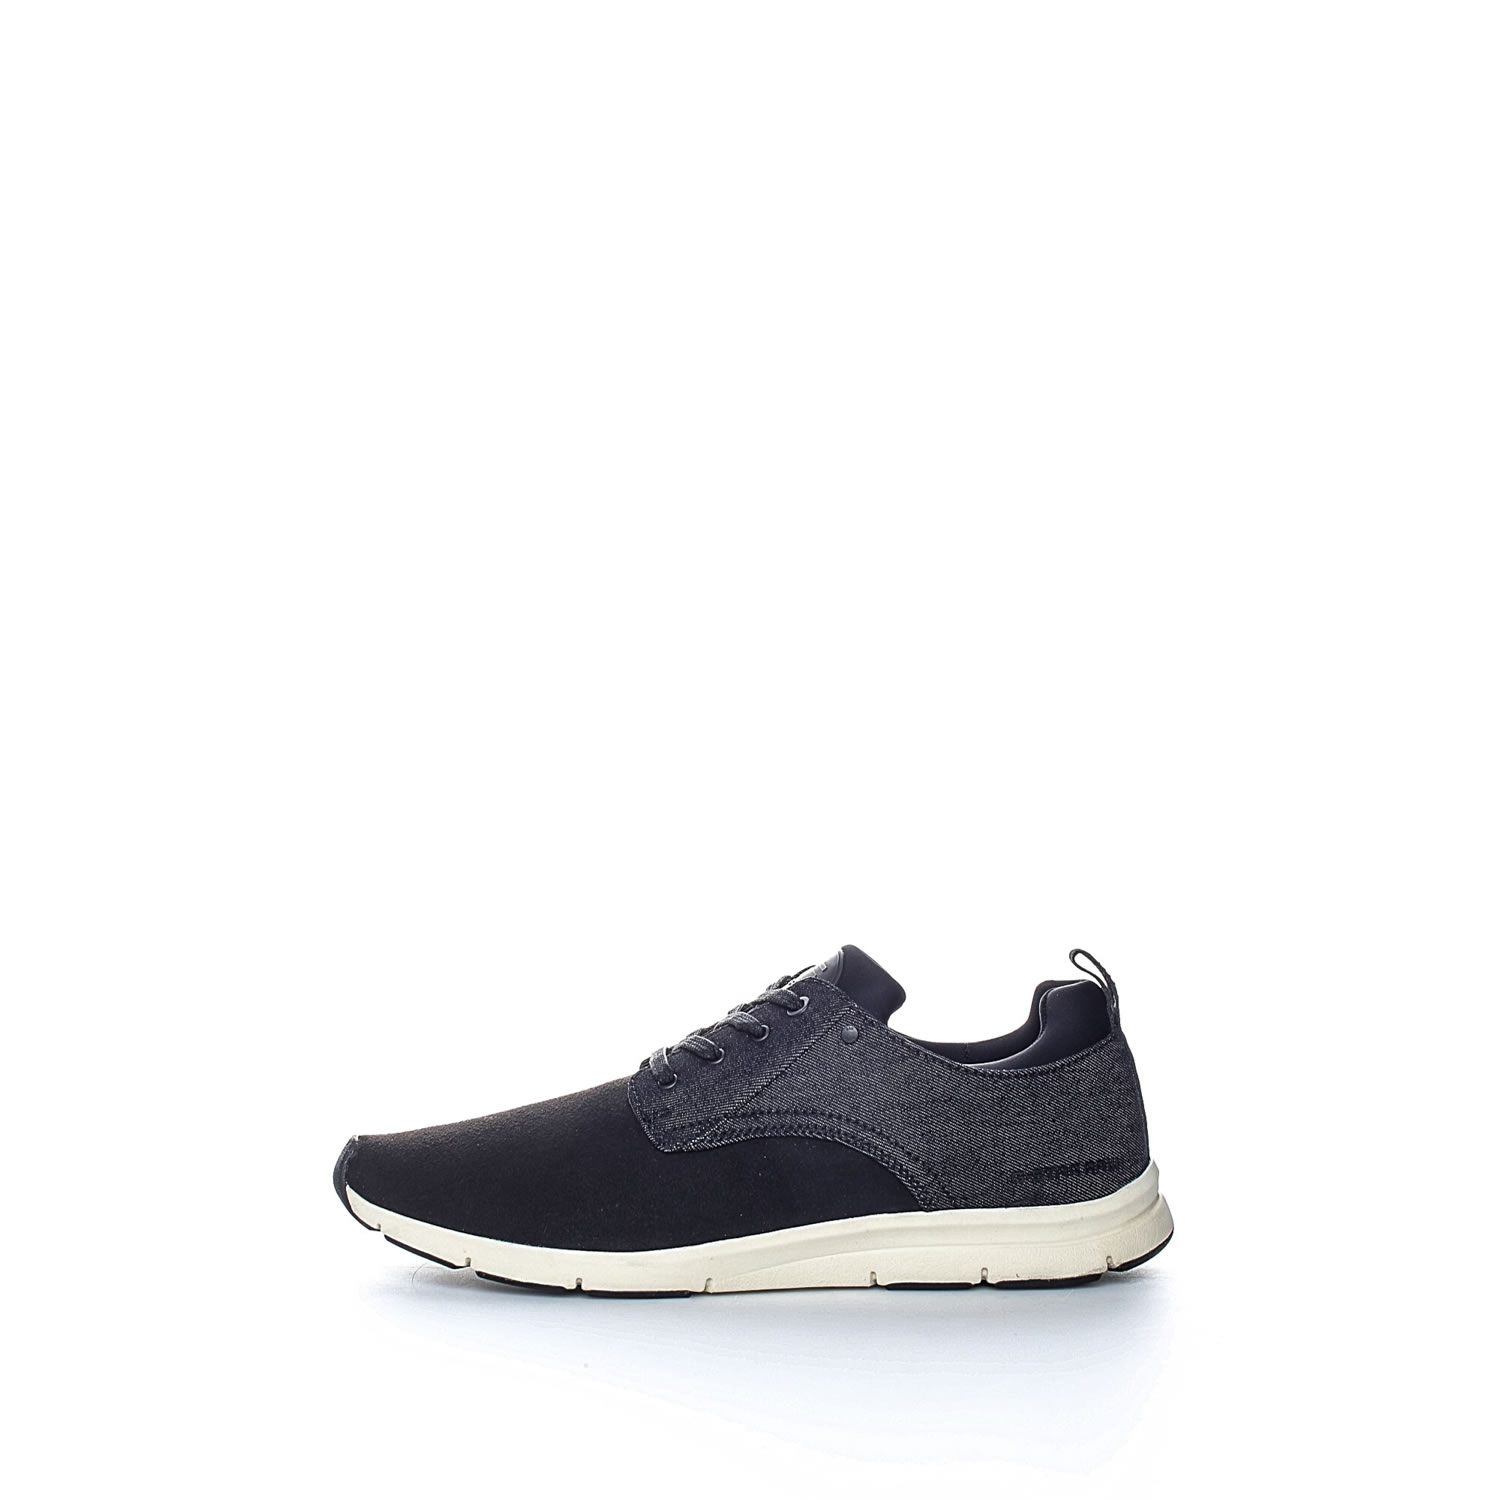 G-STAR RAW - Ανδρικά sneakers G-STar Raw Aver μαύρα ανδρικά παπούτσια sneakers